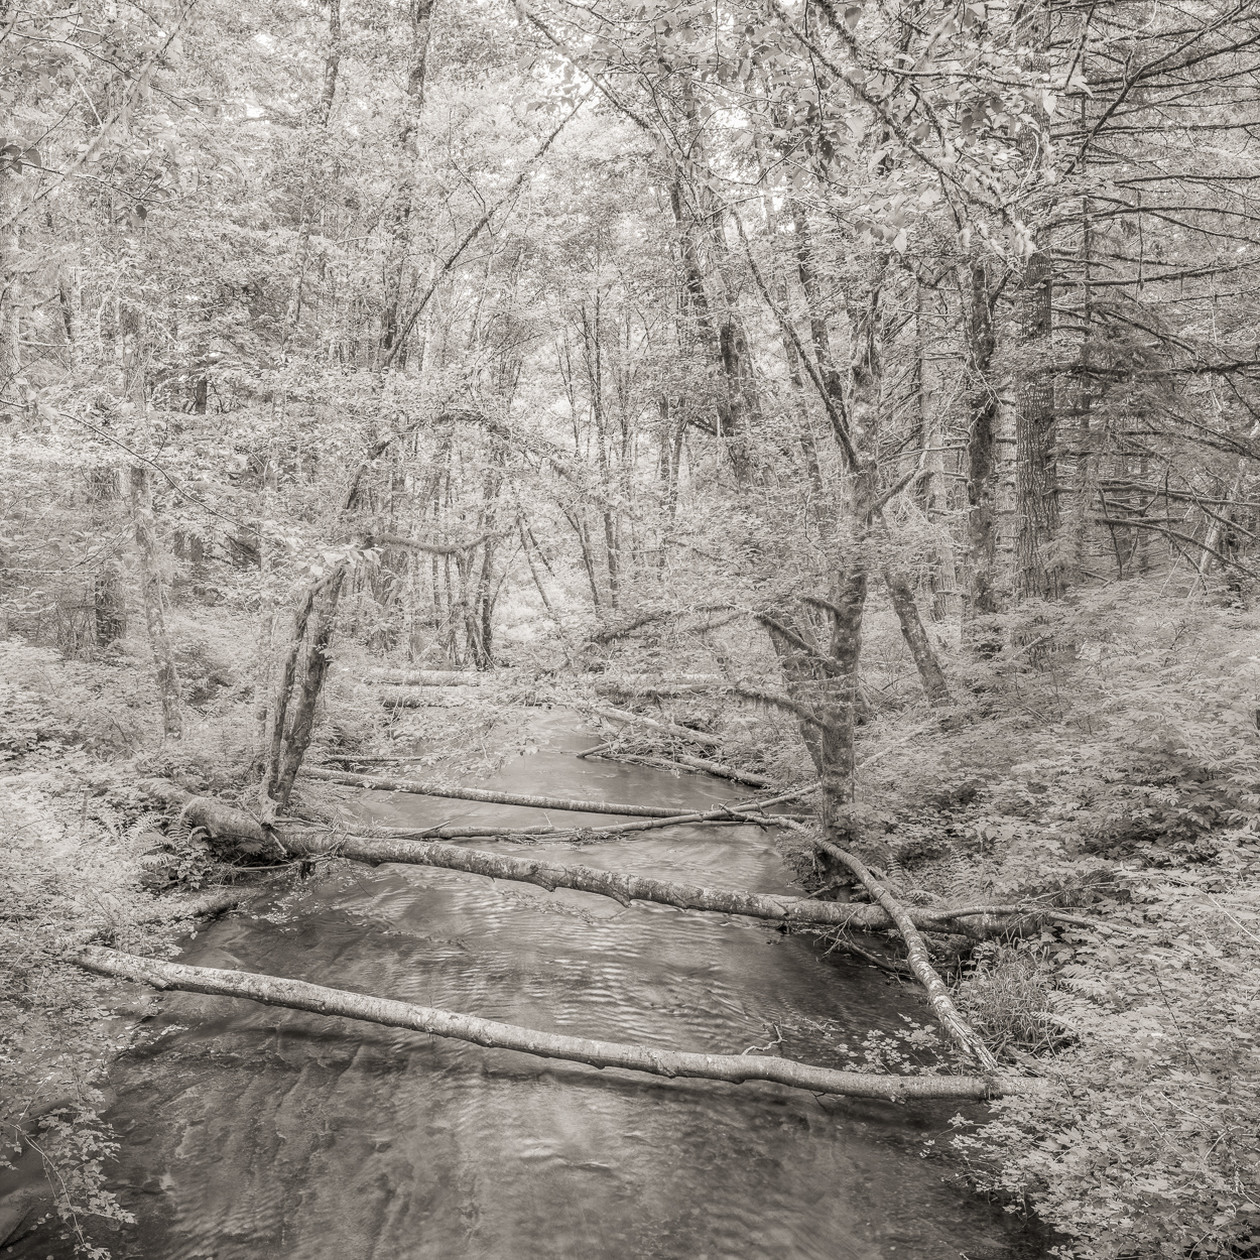 Forest and Stream, Alsea (2013) by Jeffrey Conley